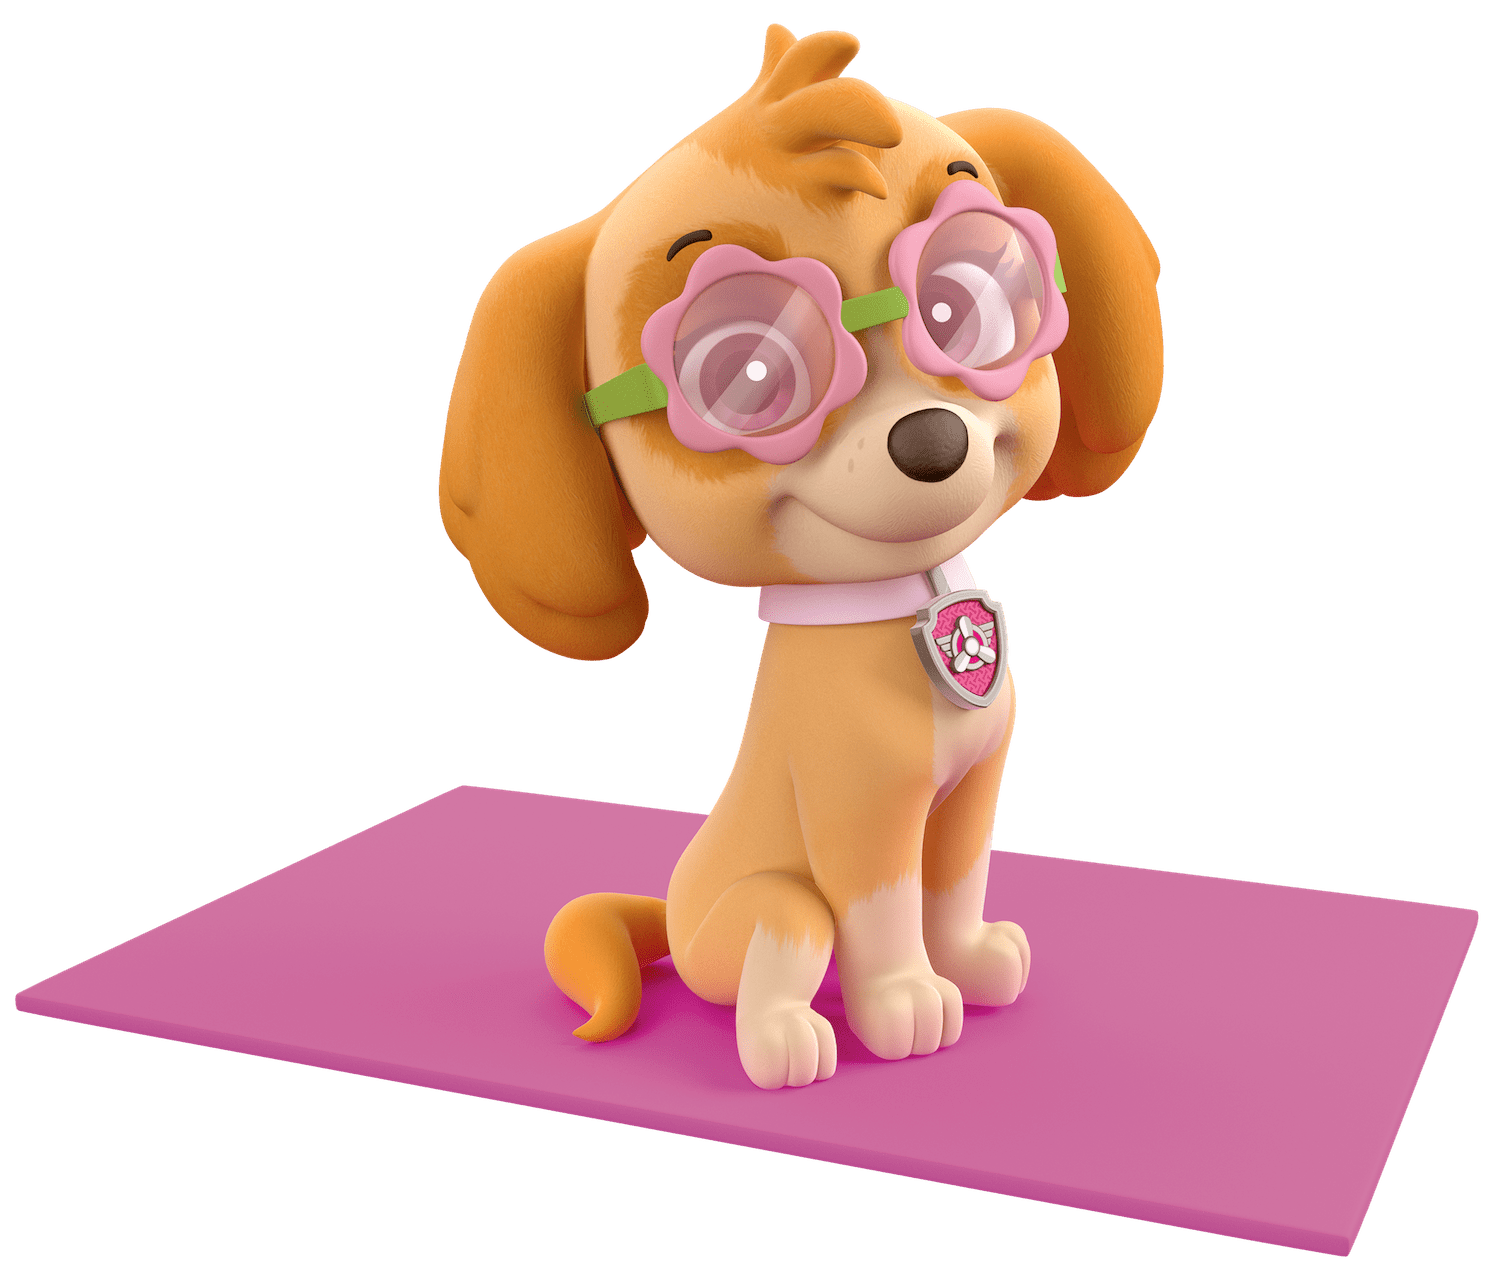 Skye paw patrol png. Ready for the gym